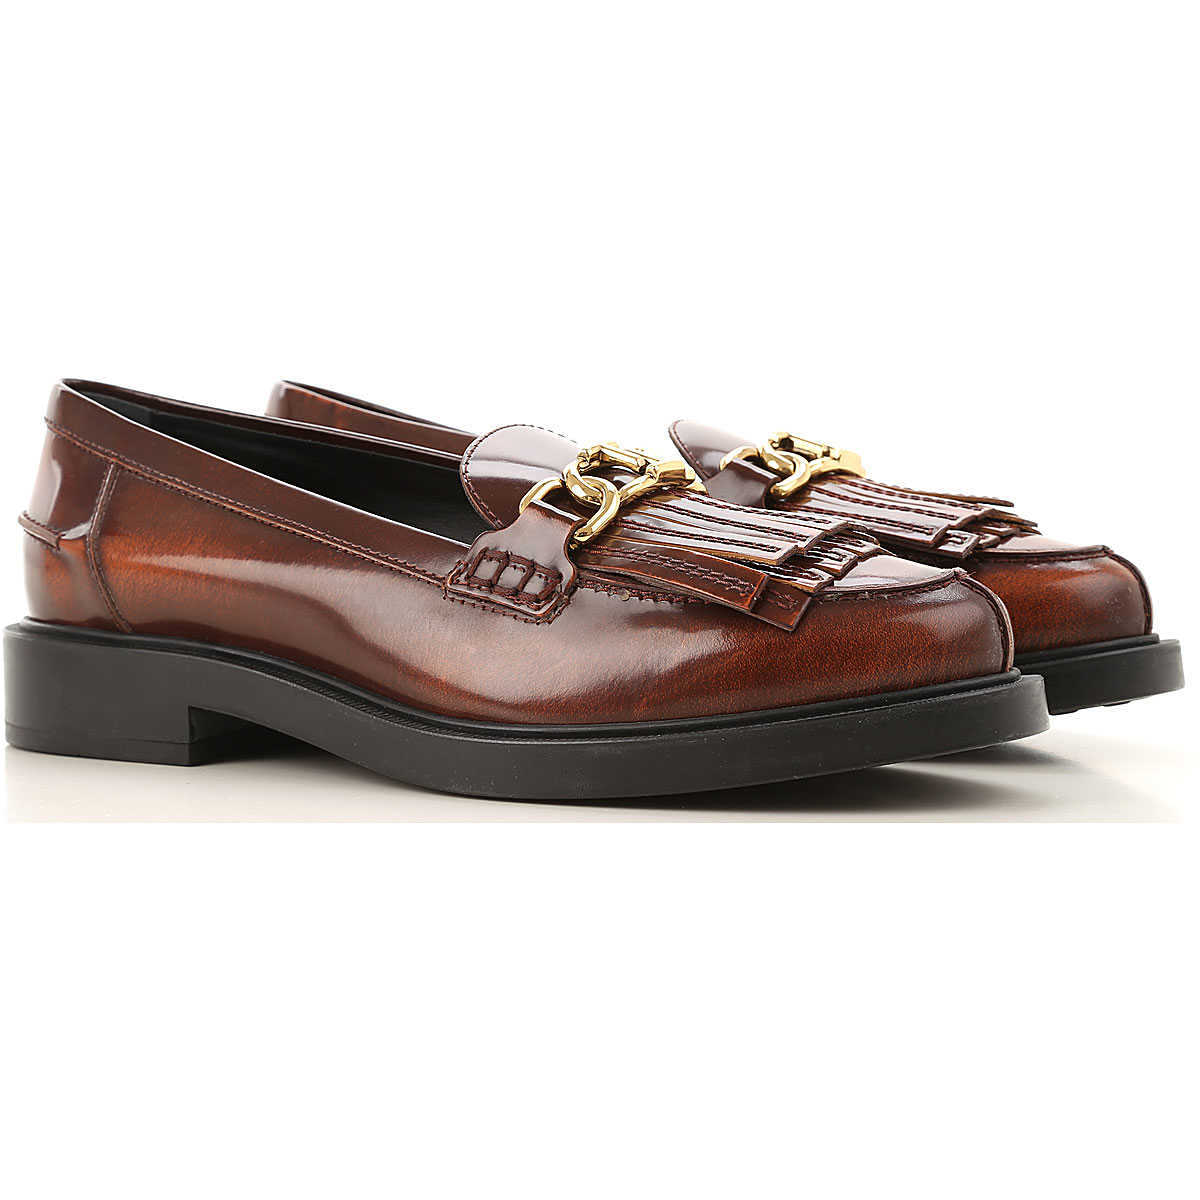 Tods Loafers for Women On Sale Red DK - GOOFASH - Womens FLAT SHOES